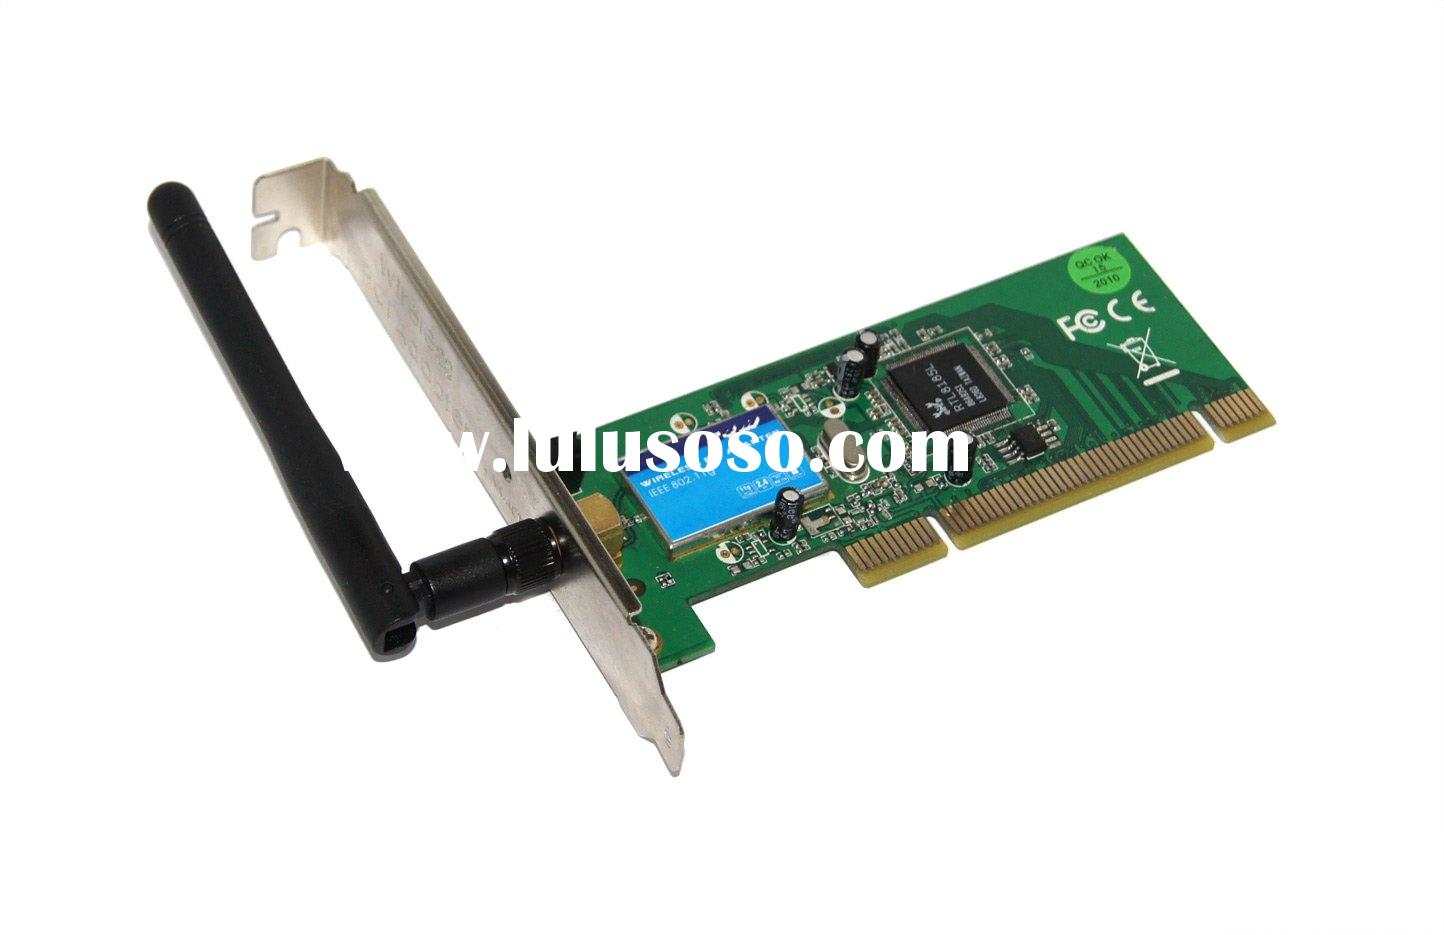 54M PCI Wireless Networking Card